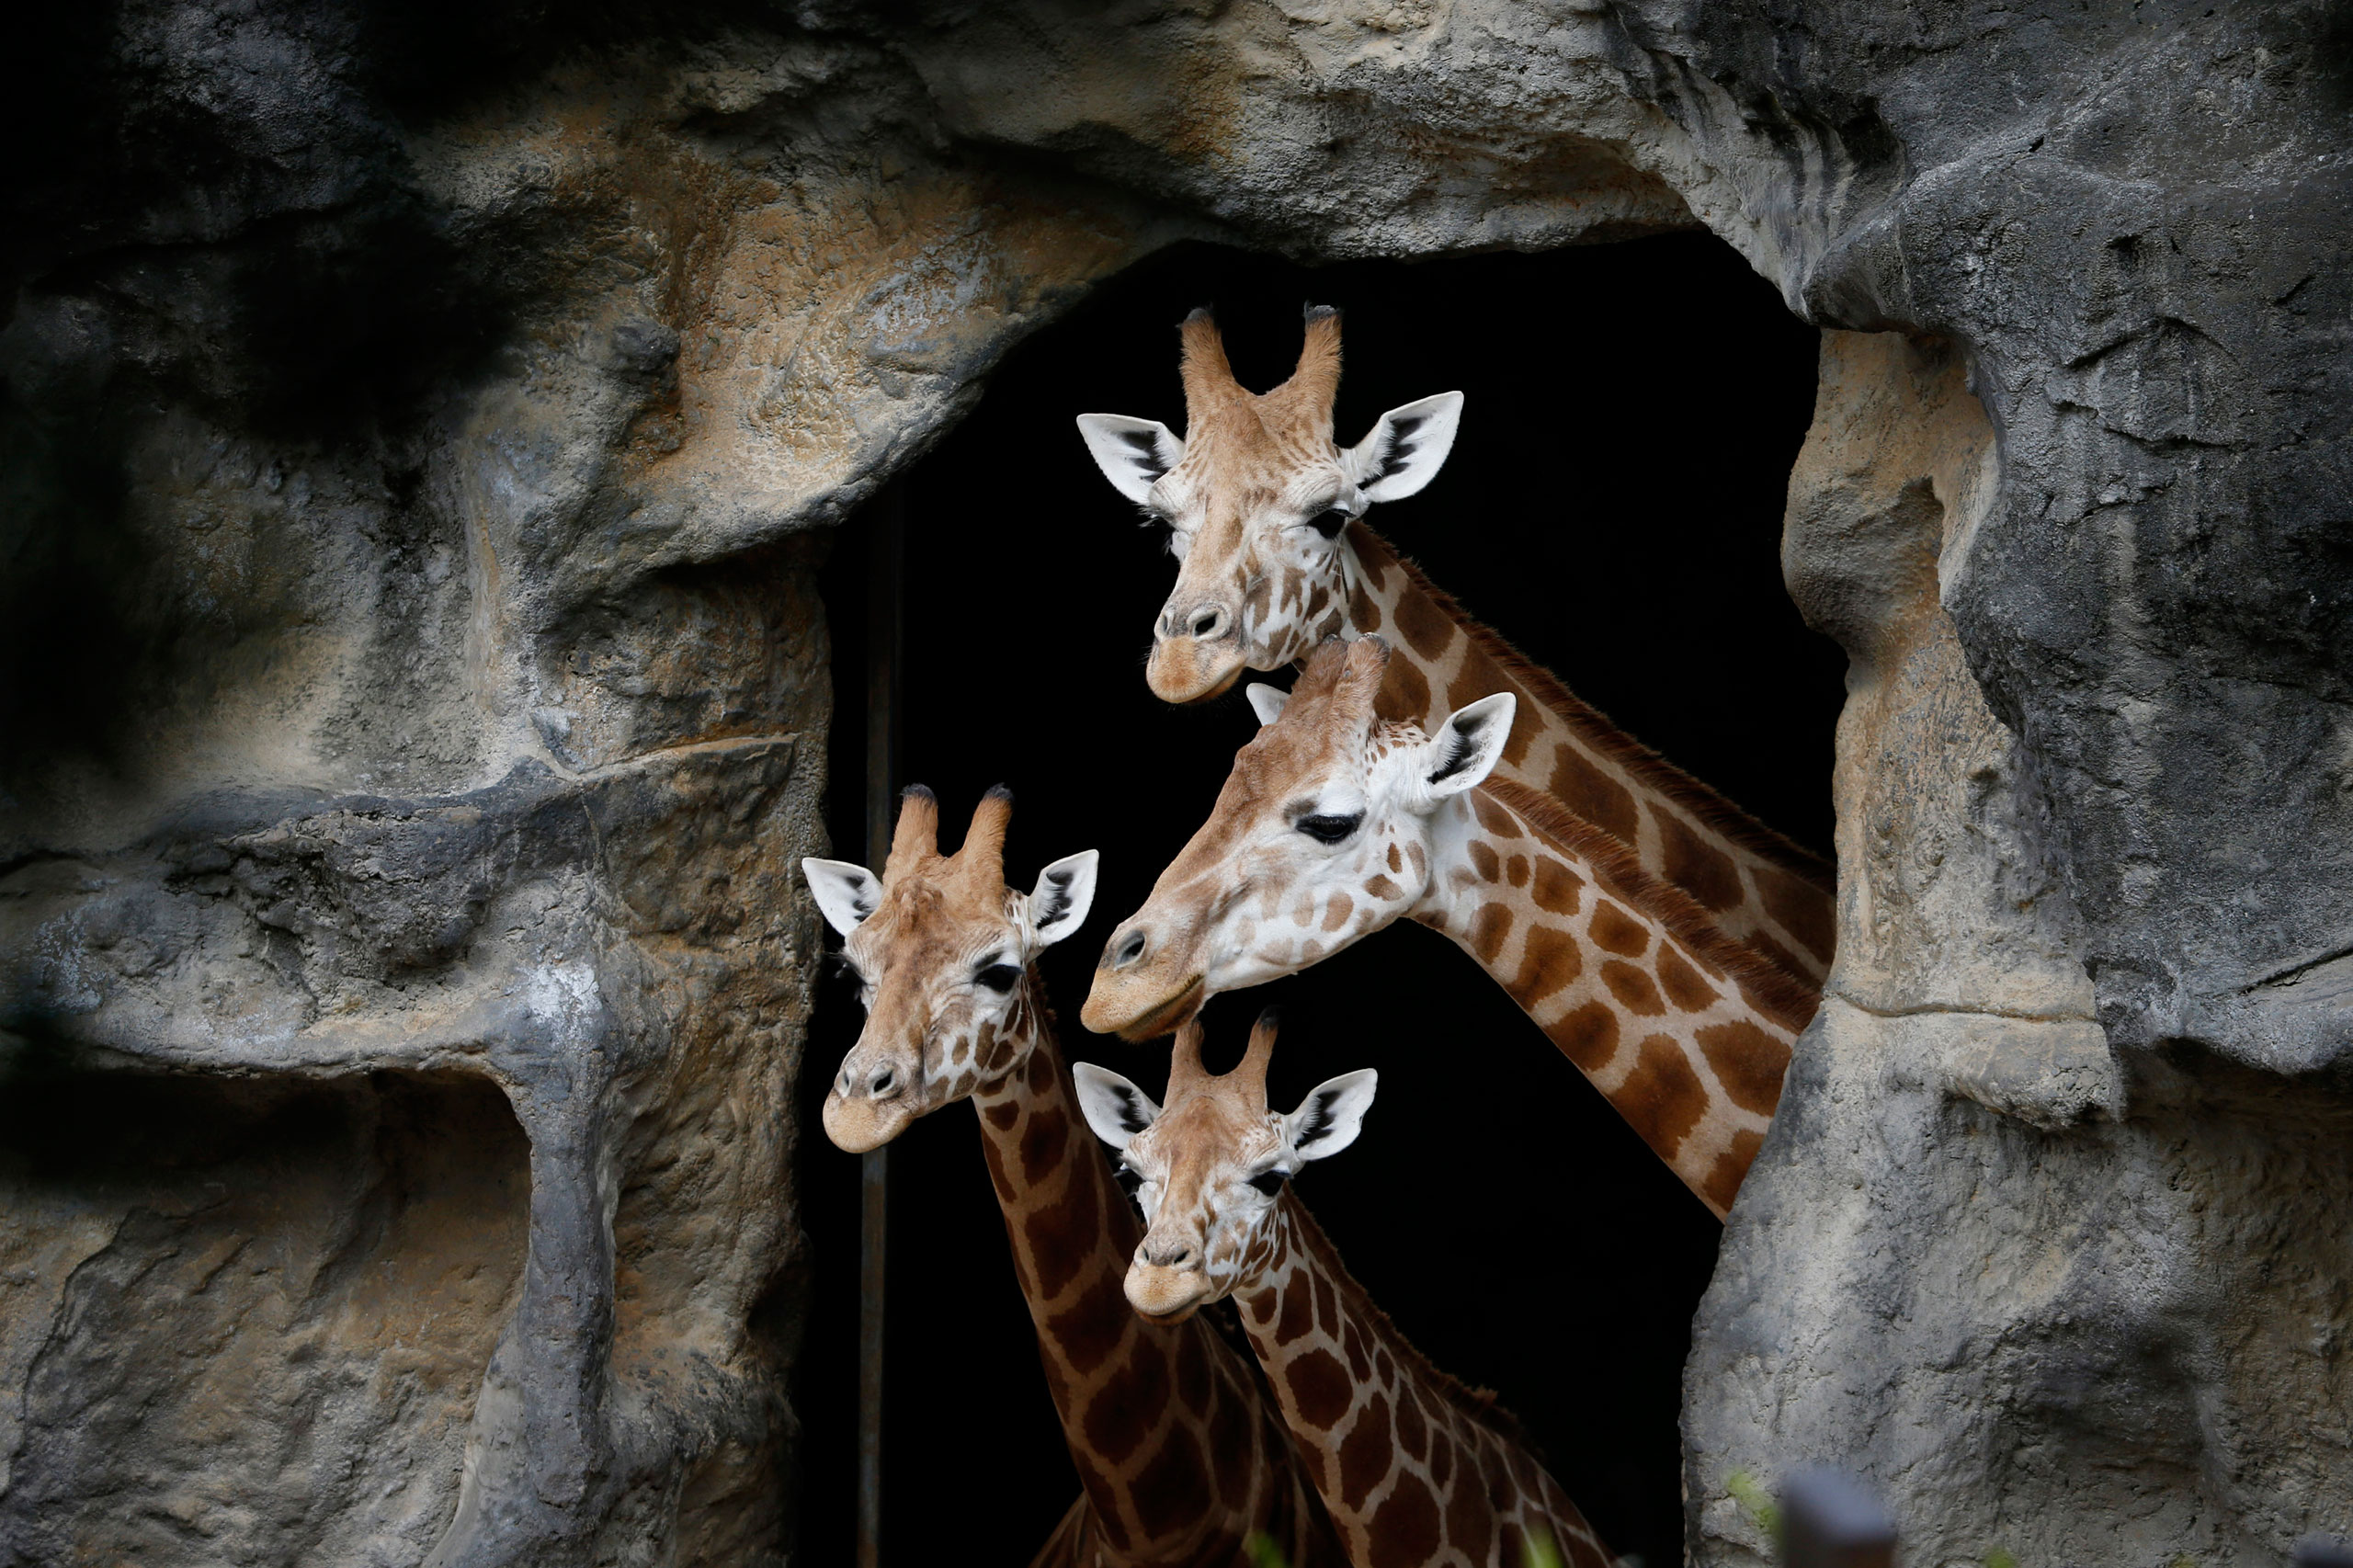 A family of giraffes looks out from their enclosure before taking part in a Christmas-themed feeding session at Sydney's Taronga Park Zoo, Australia, Dec. 9, 2014.